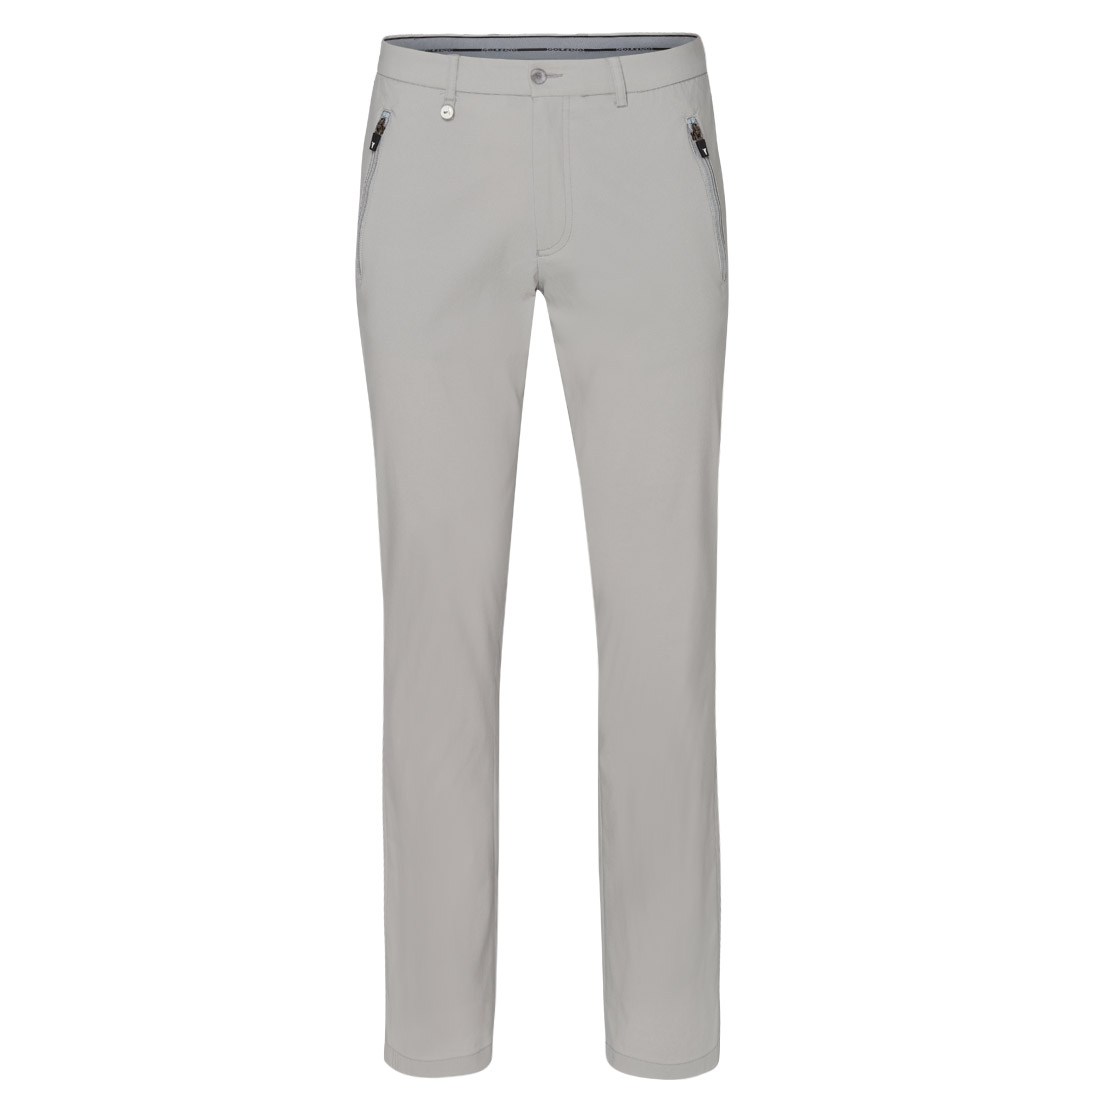 Zipped Pockets Techno Stretch Trouser